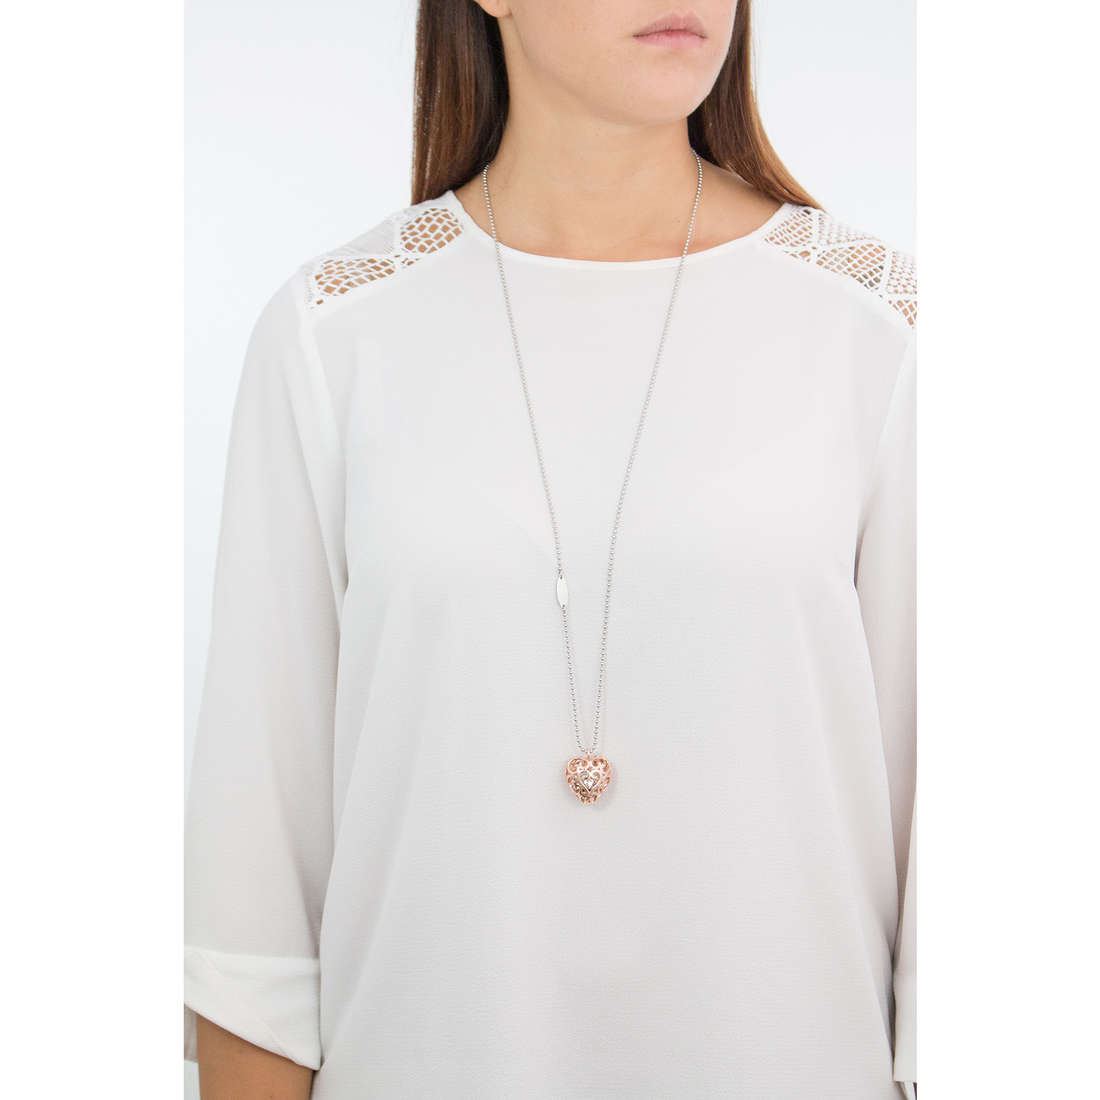 Luca Barra necklaces woman LBCK1052 photo wearing